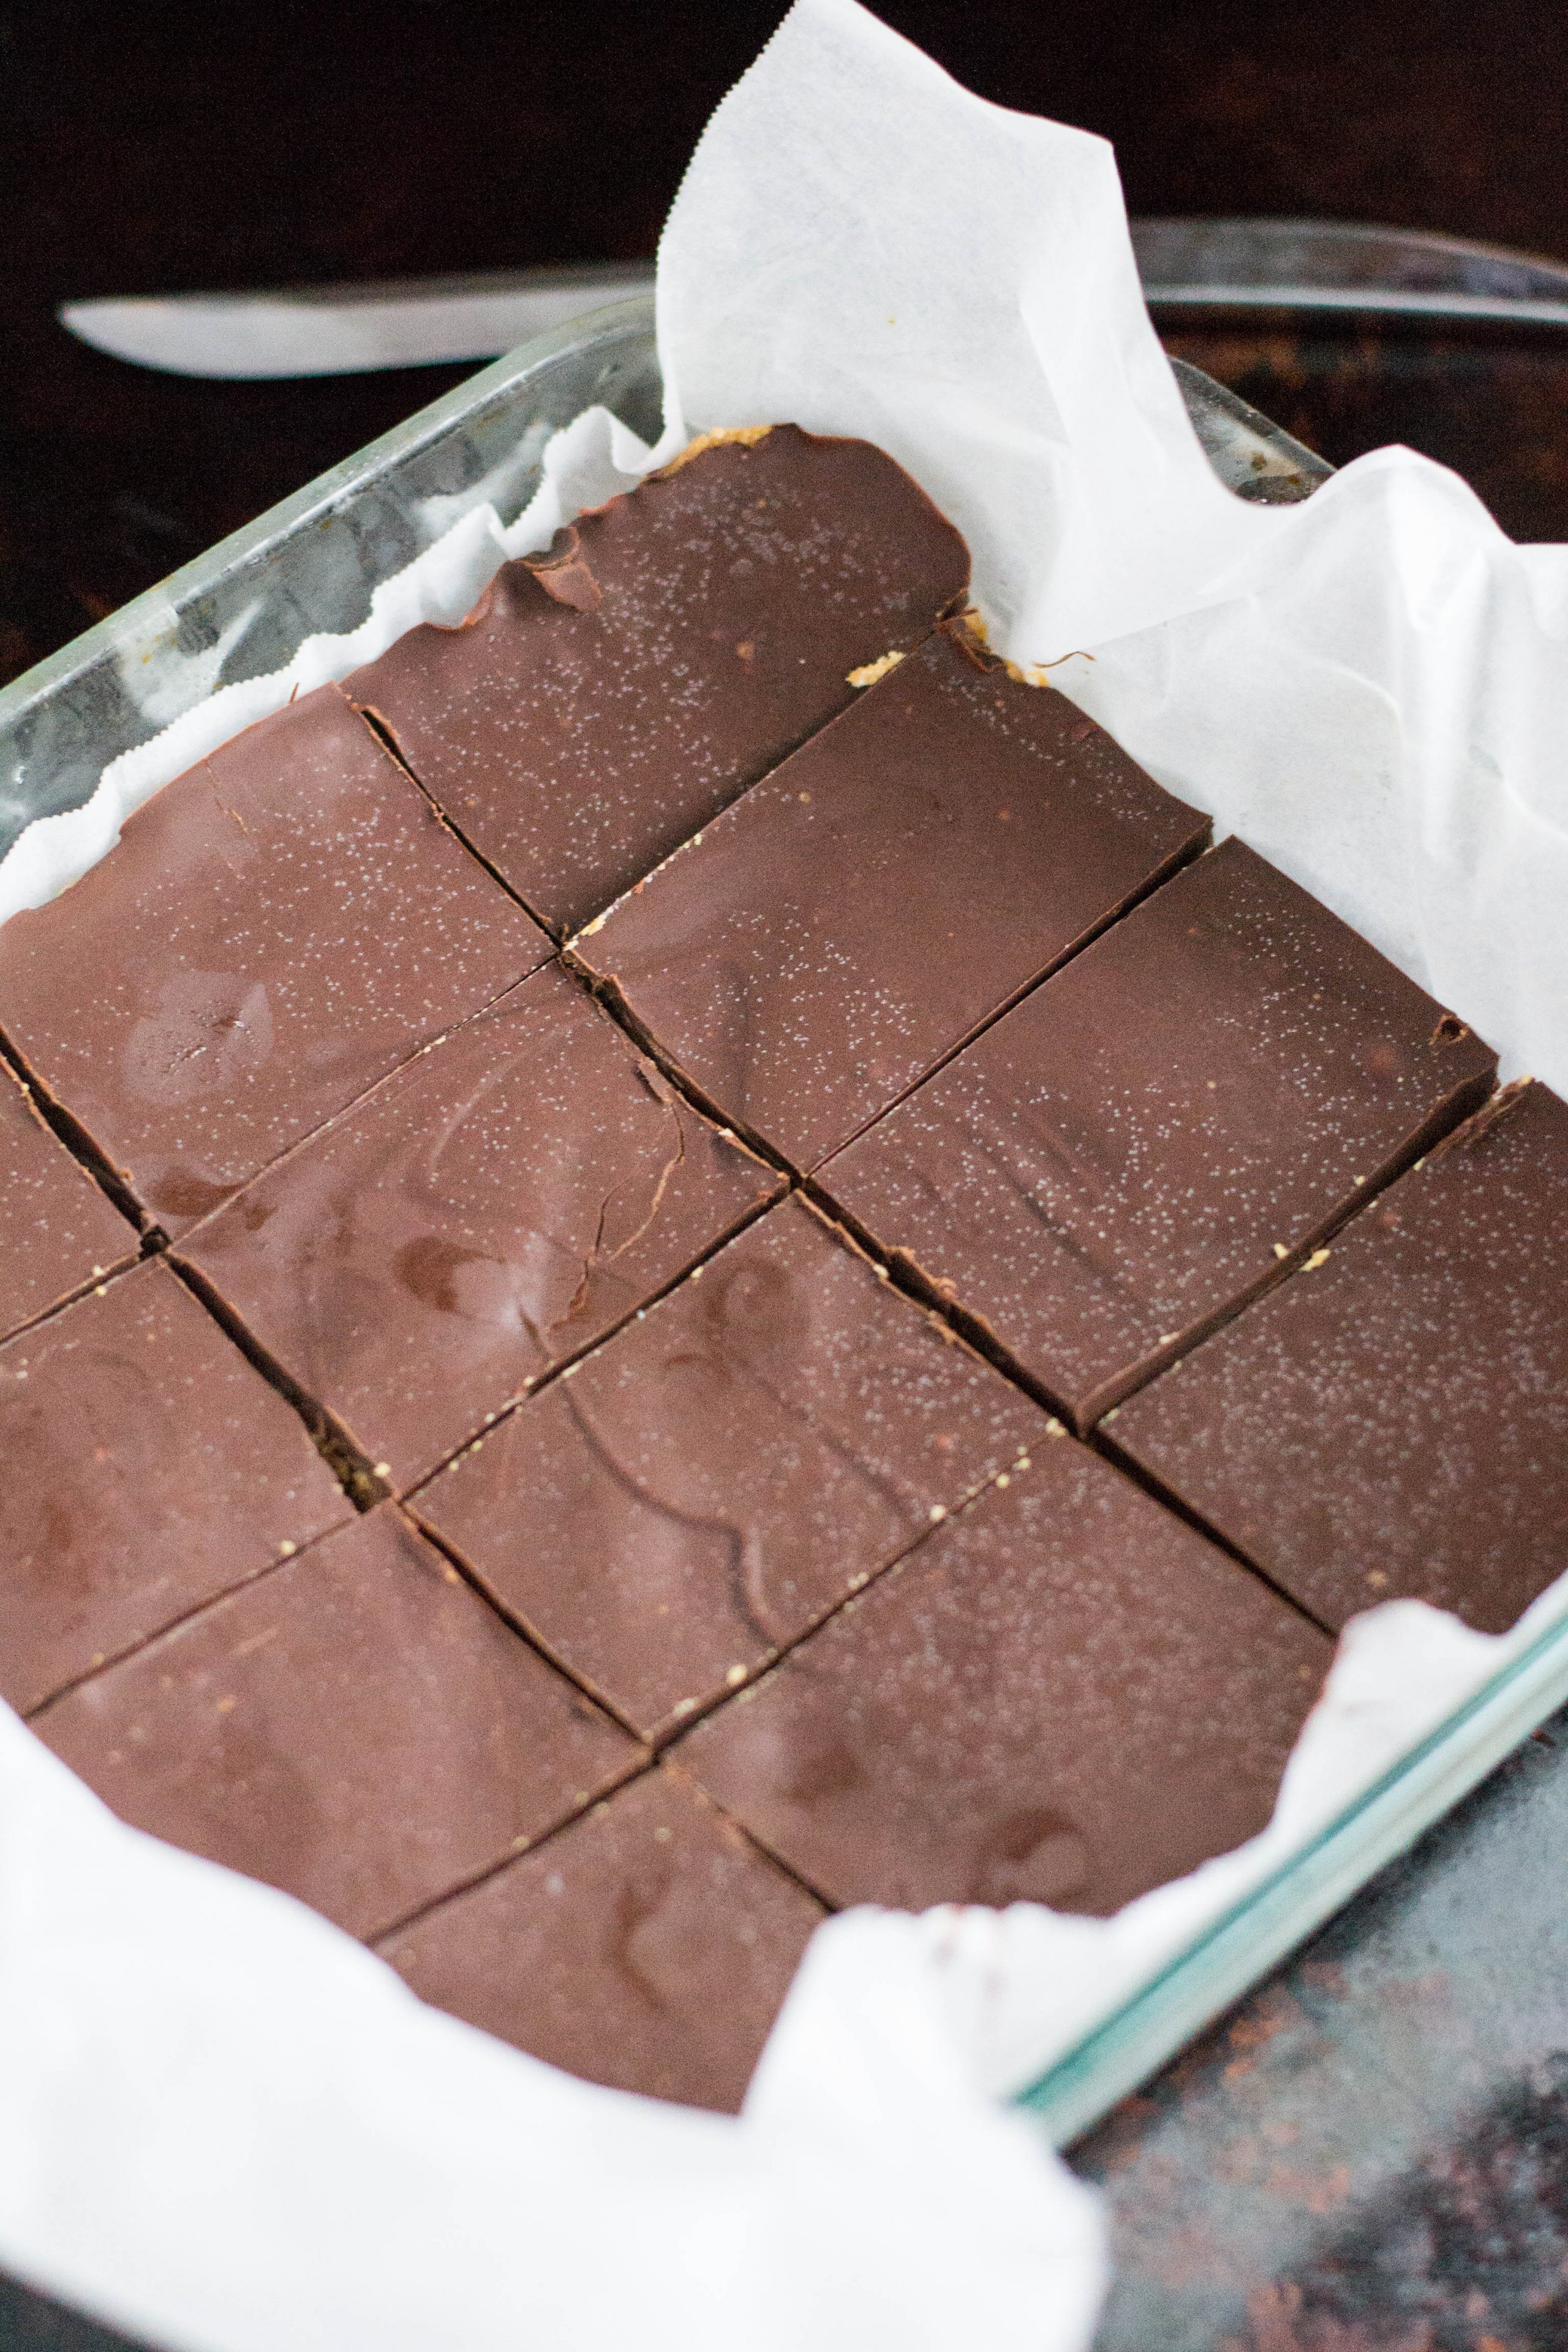 A  baking dish lined with parchment paper containing chocolate peanut butter bars that have been sliced into rectangles.